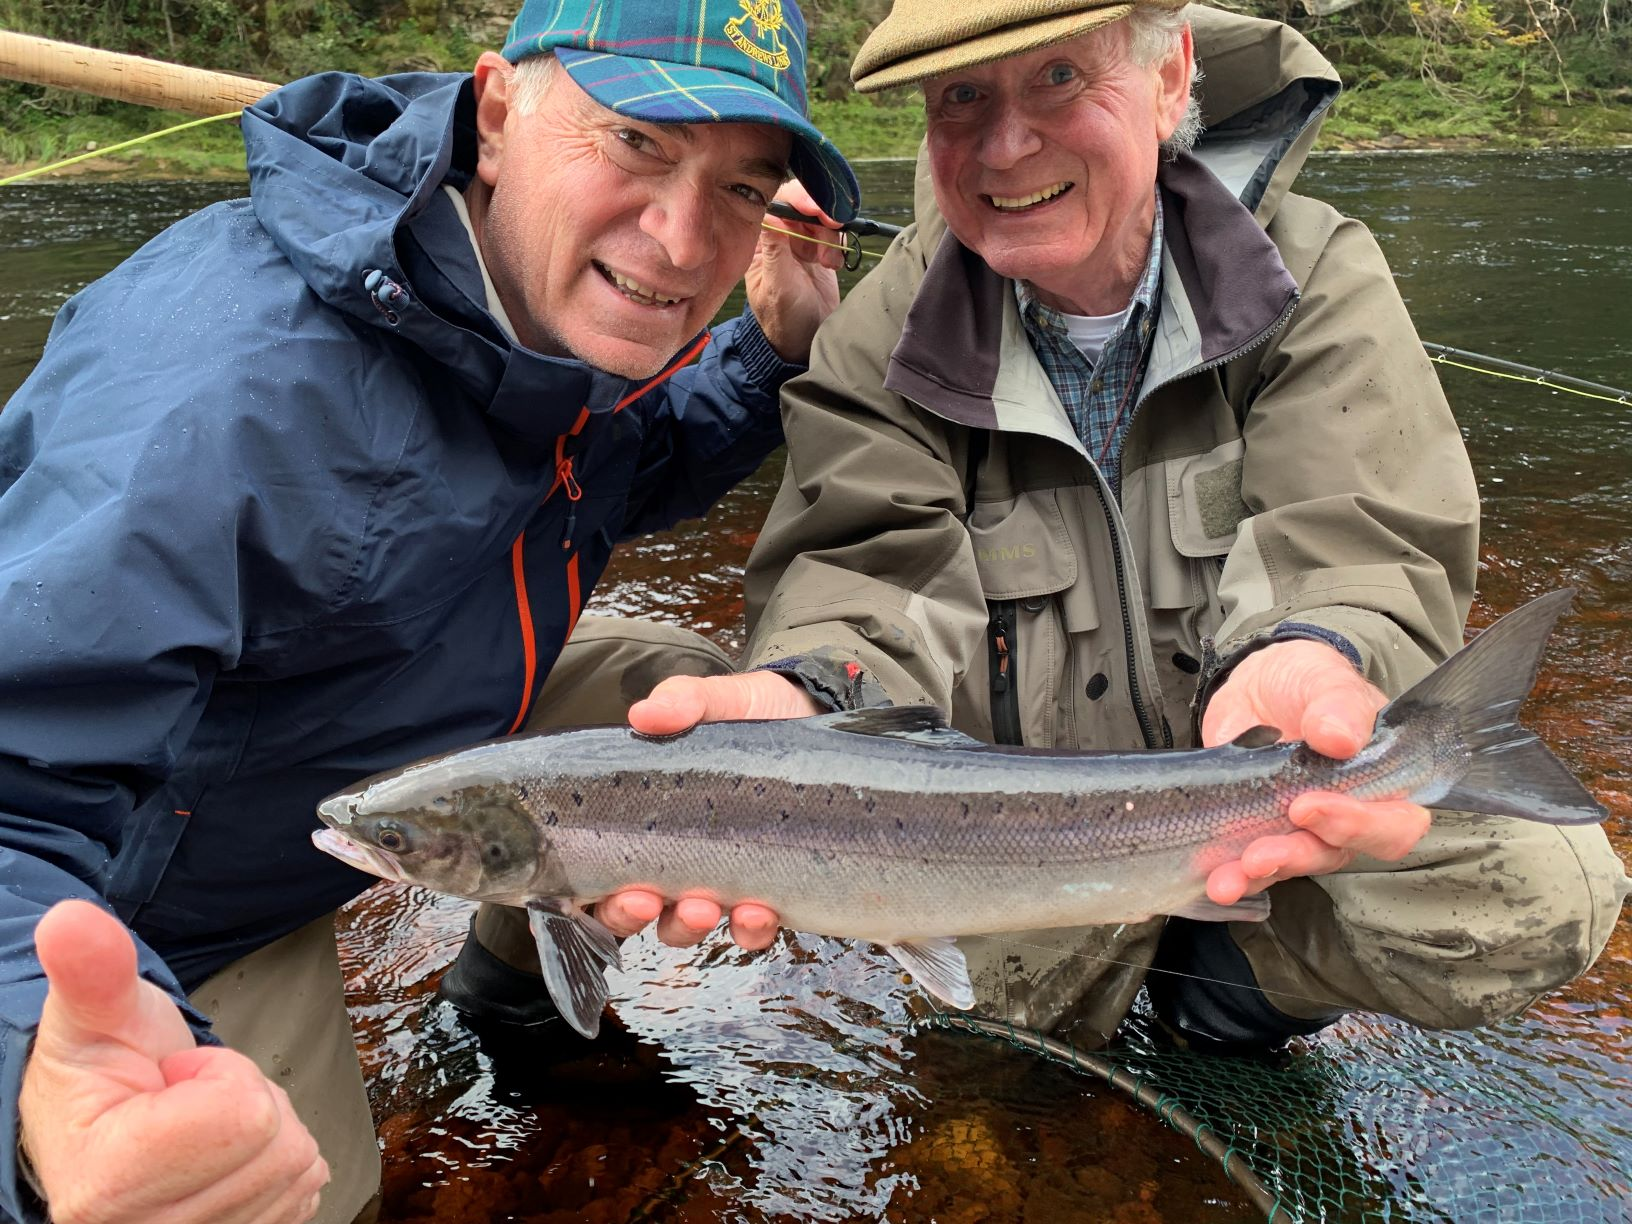 Pete Love with his first ever Atlantic salmon (grilse) from Palamore Pool on Altyre Estate, River Findhorn